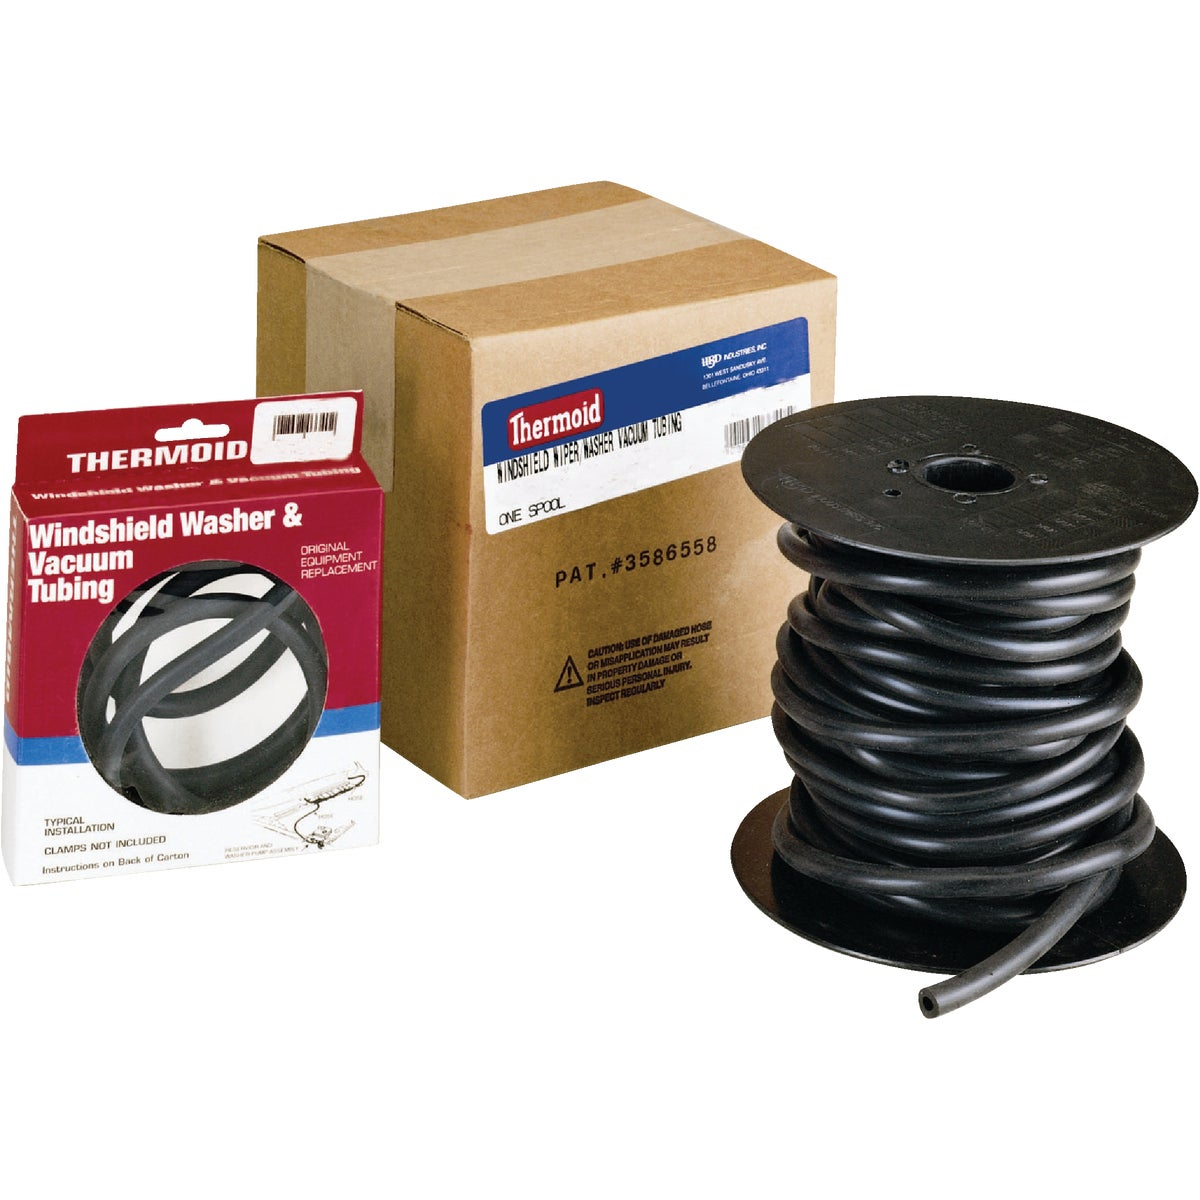 "7/64"" WNDSHLD WASHR HOSE - 333950 by H B D Industries Inc"